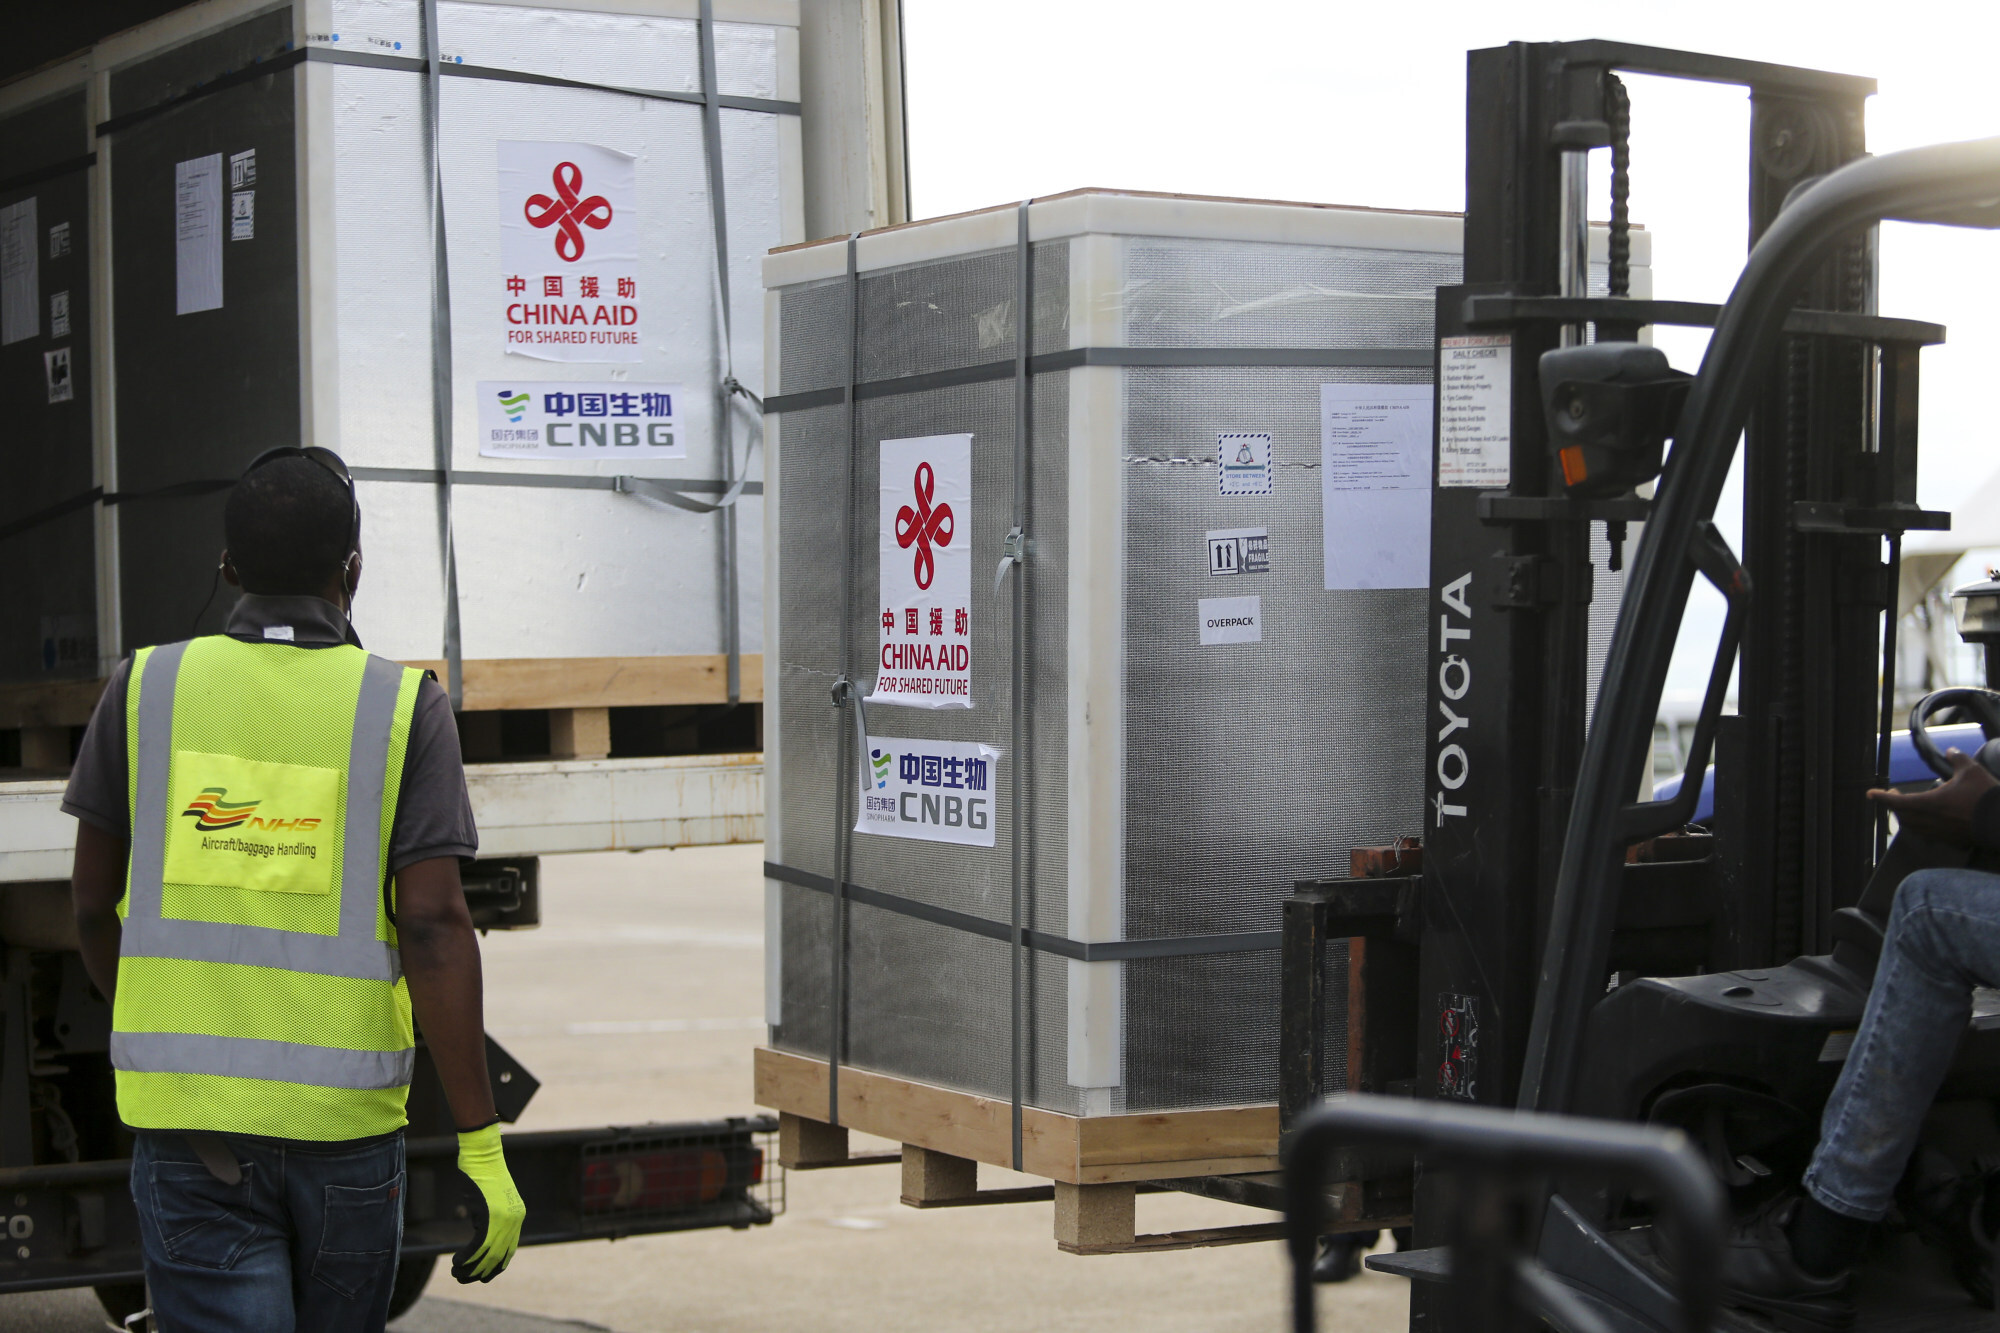 A shipment of 200,000 doses of Sinopharm's vaccine is loaded on a truck at the airport in Harare, Zimbabwe in February. Photo: Xinhua